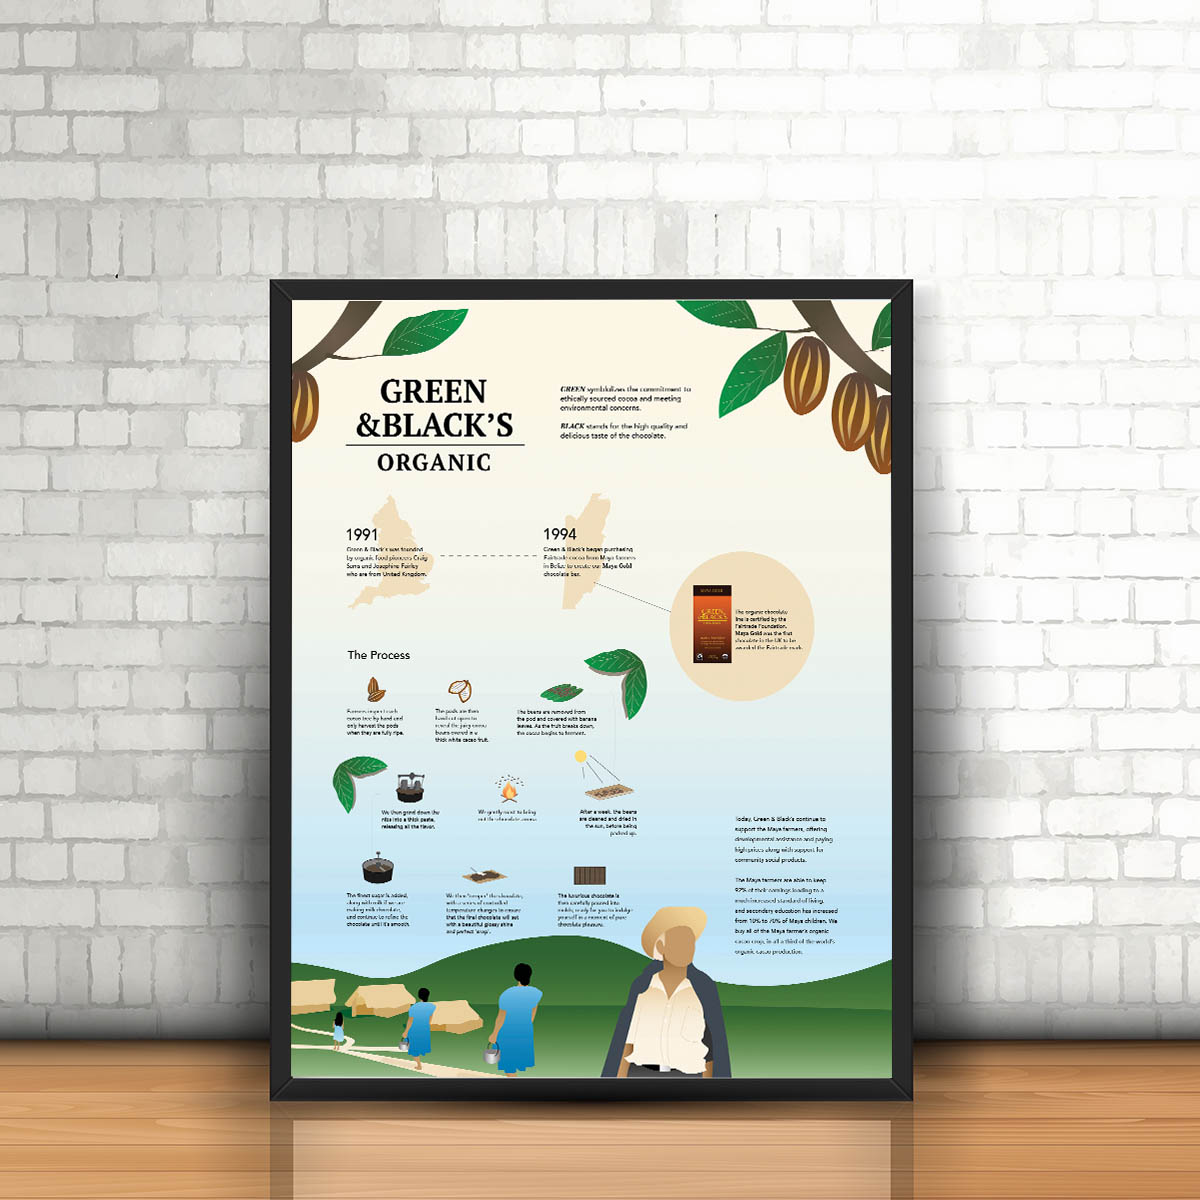 Green & Black's Chocolate Info graph 16x20 Exhibited at Belcher Gallery, San Jose CA  October 2018 mockup by @graphictwister